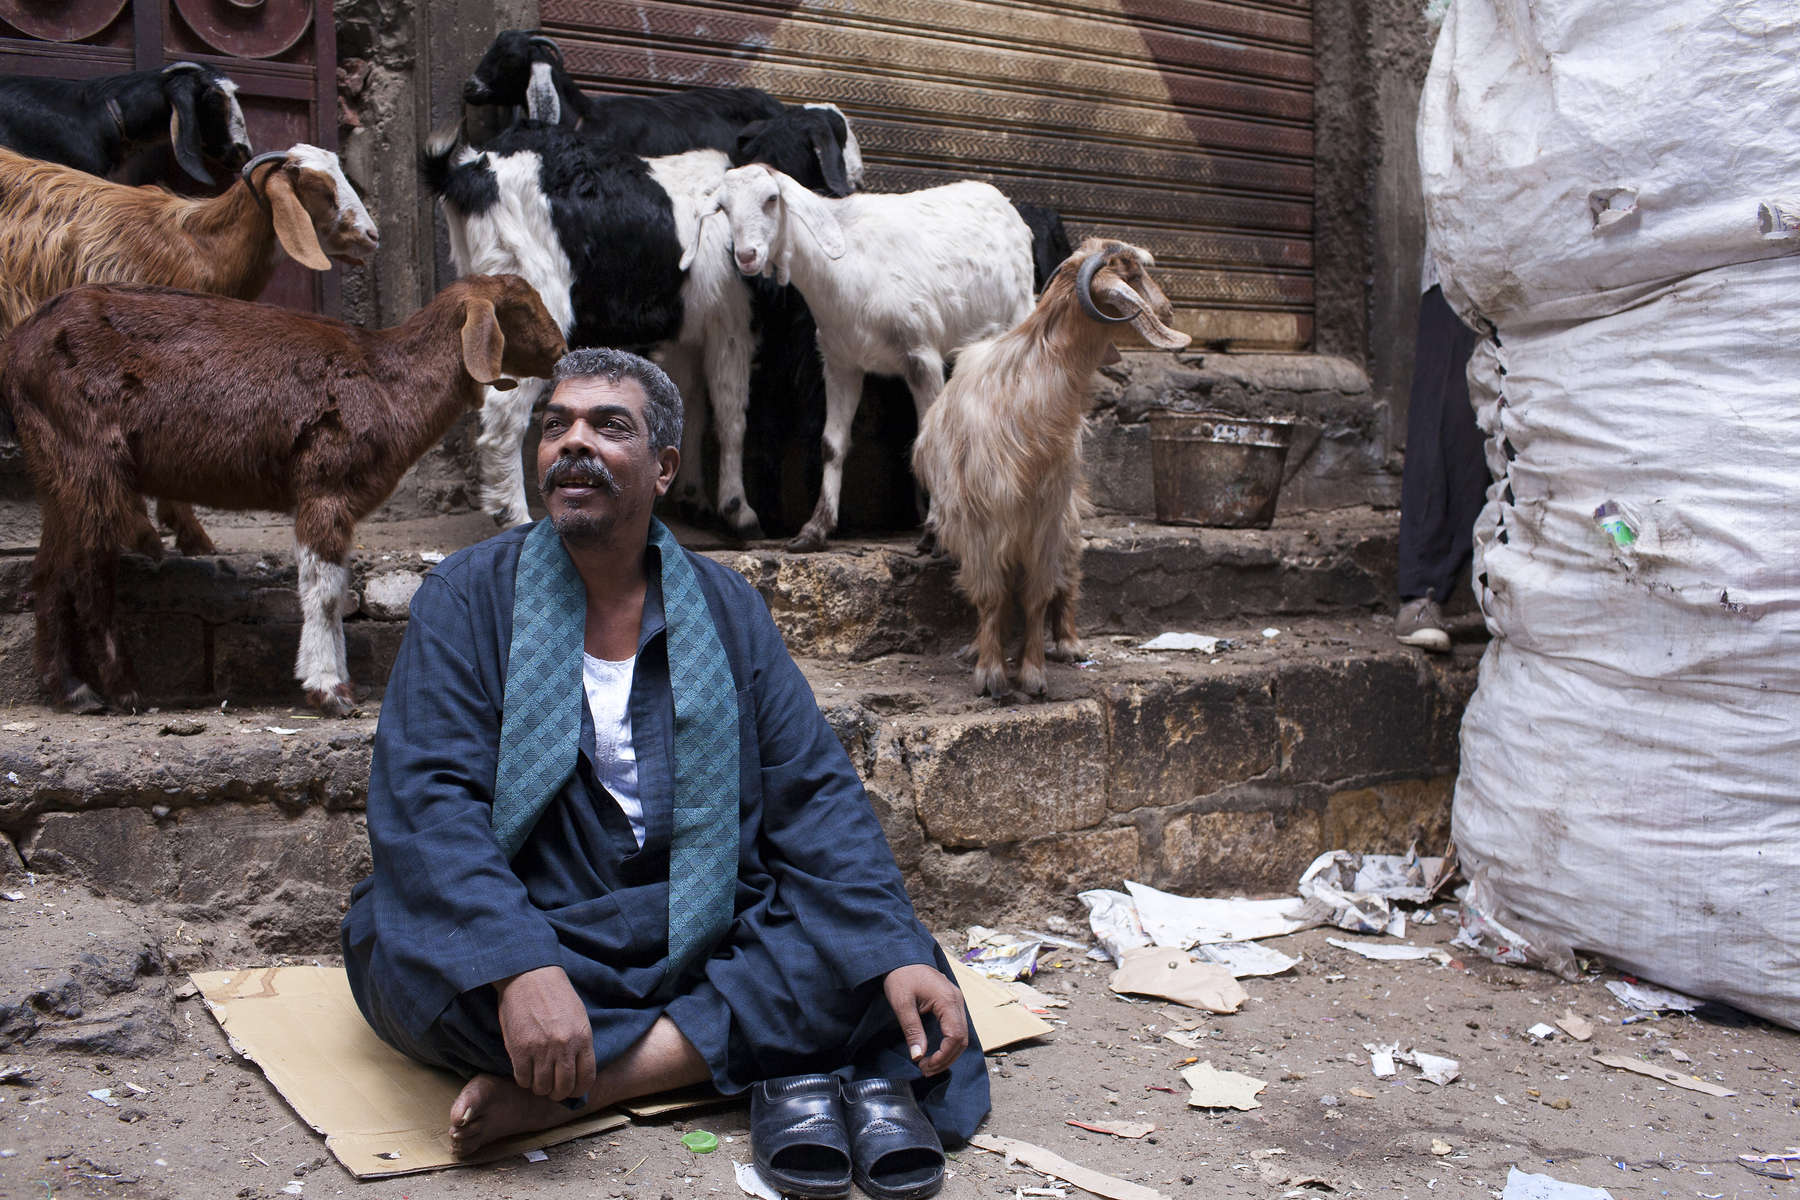 "A Zabaleen man sits with his goats on the street in Moqqatam.Moqqatam is a suburb on the edge of Cairo and home to a people known as the Zabaleen, said to be the world's greatest waste recyclers. The Zabaleen, which means plainly enough, ""the garbage collectors"", pick up around 4,000 tons of Cairo's waste each day. American researchers have shown that the Zabaleen recycle 85% of this garbage into something useful: a higher rate than anywhere else on the planet. The men do two shifts leaving about 4am and again around 9am. The rubbish is taken back to Moqqatam for the women to sit in and sort through. The organic waste is fed to livestock (the Zabaleen are originally swine herders), the rest sorted for recycling. The future of the Zabaleen is uncertain: if the Cairo authorities get their way, this community of around 25,000 Coptic Christians living in a Muslim country will be gone, and with it, their unique lifestyle."